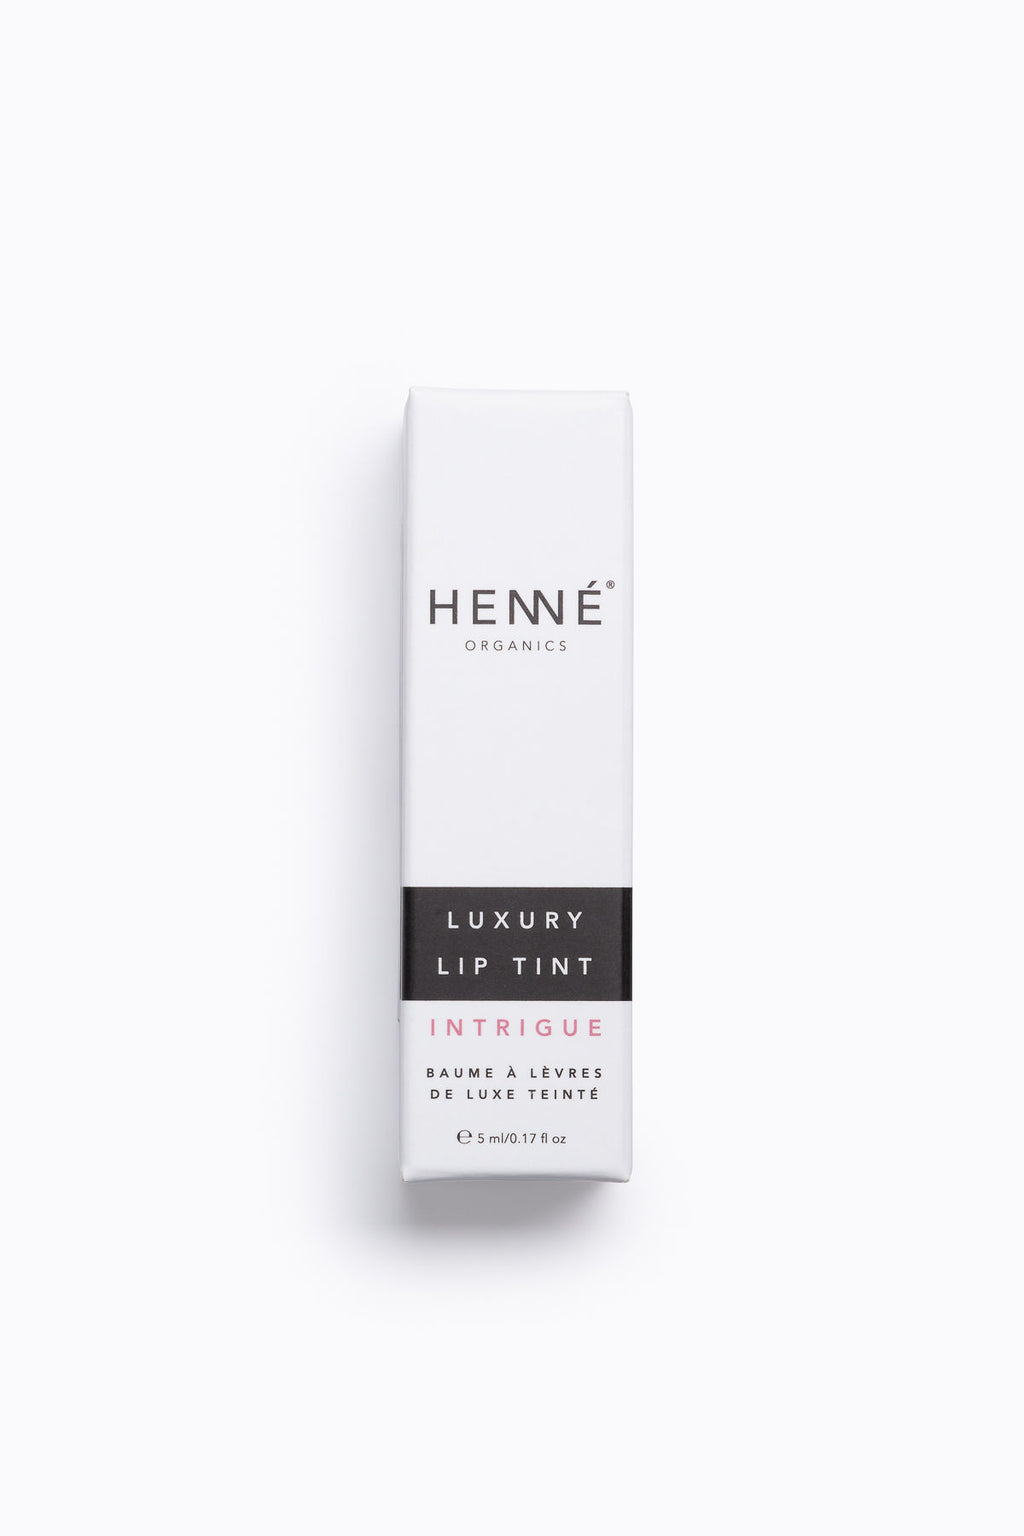 Henne: Luxury Lip Tint in Intrigue